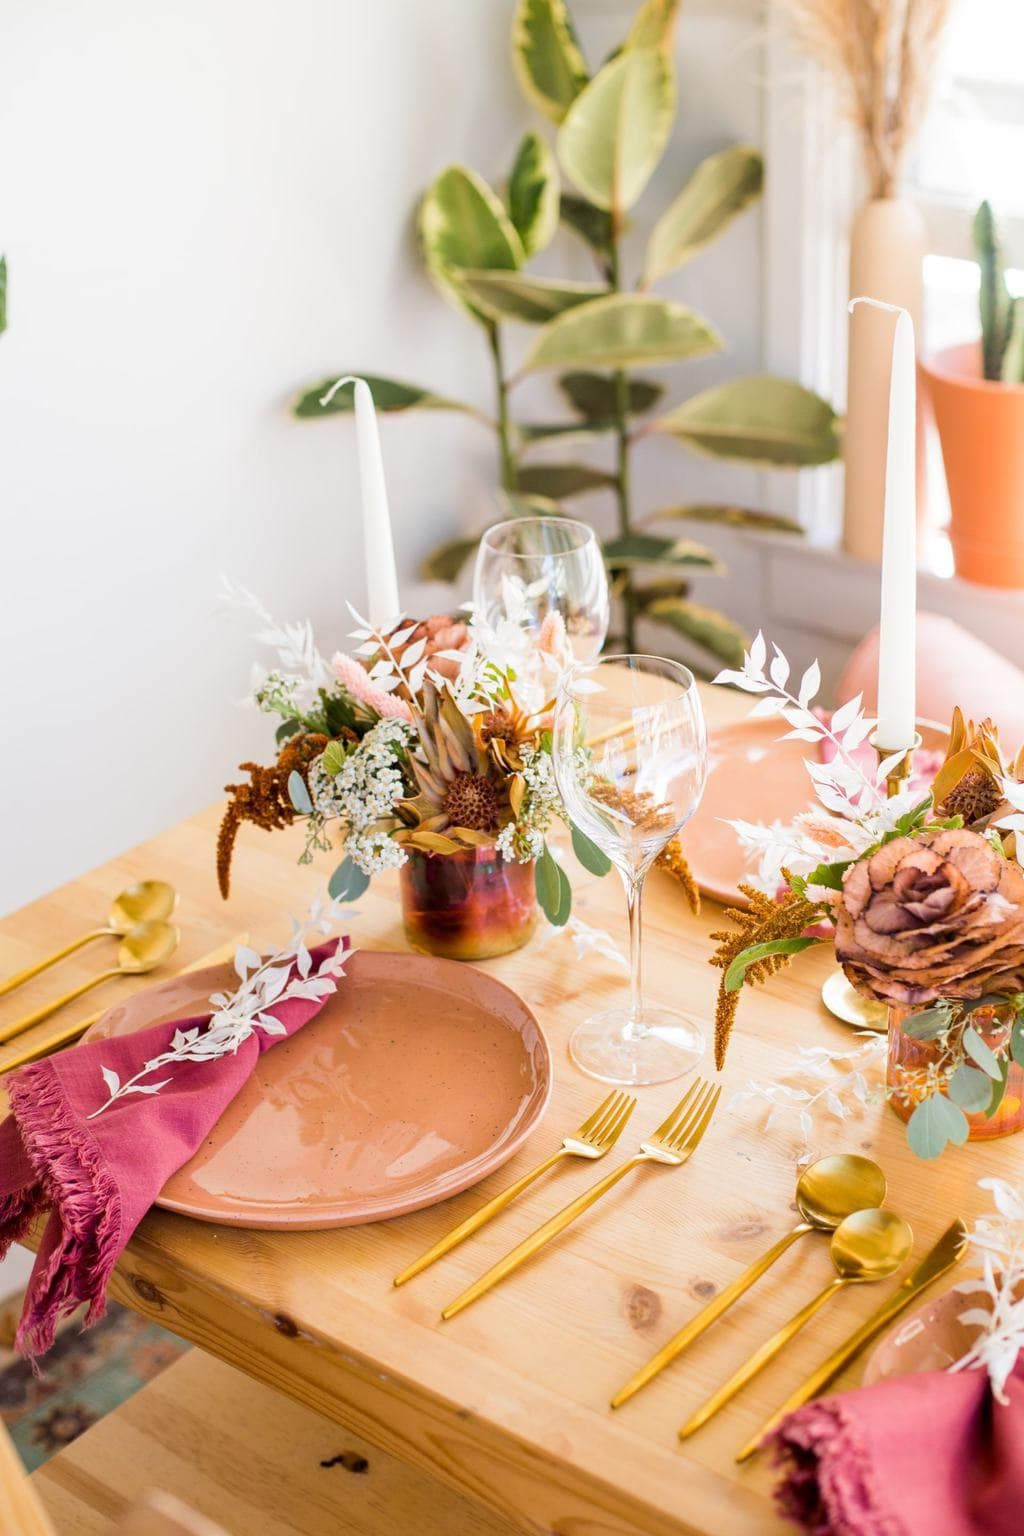 Thanksgiving table setting with a peach plate and gold flatware.